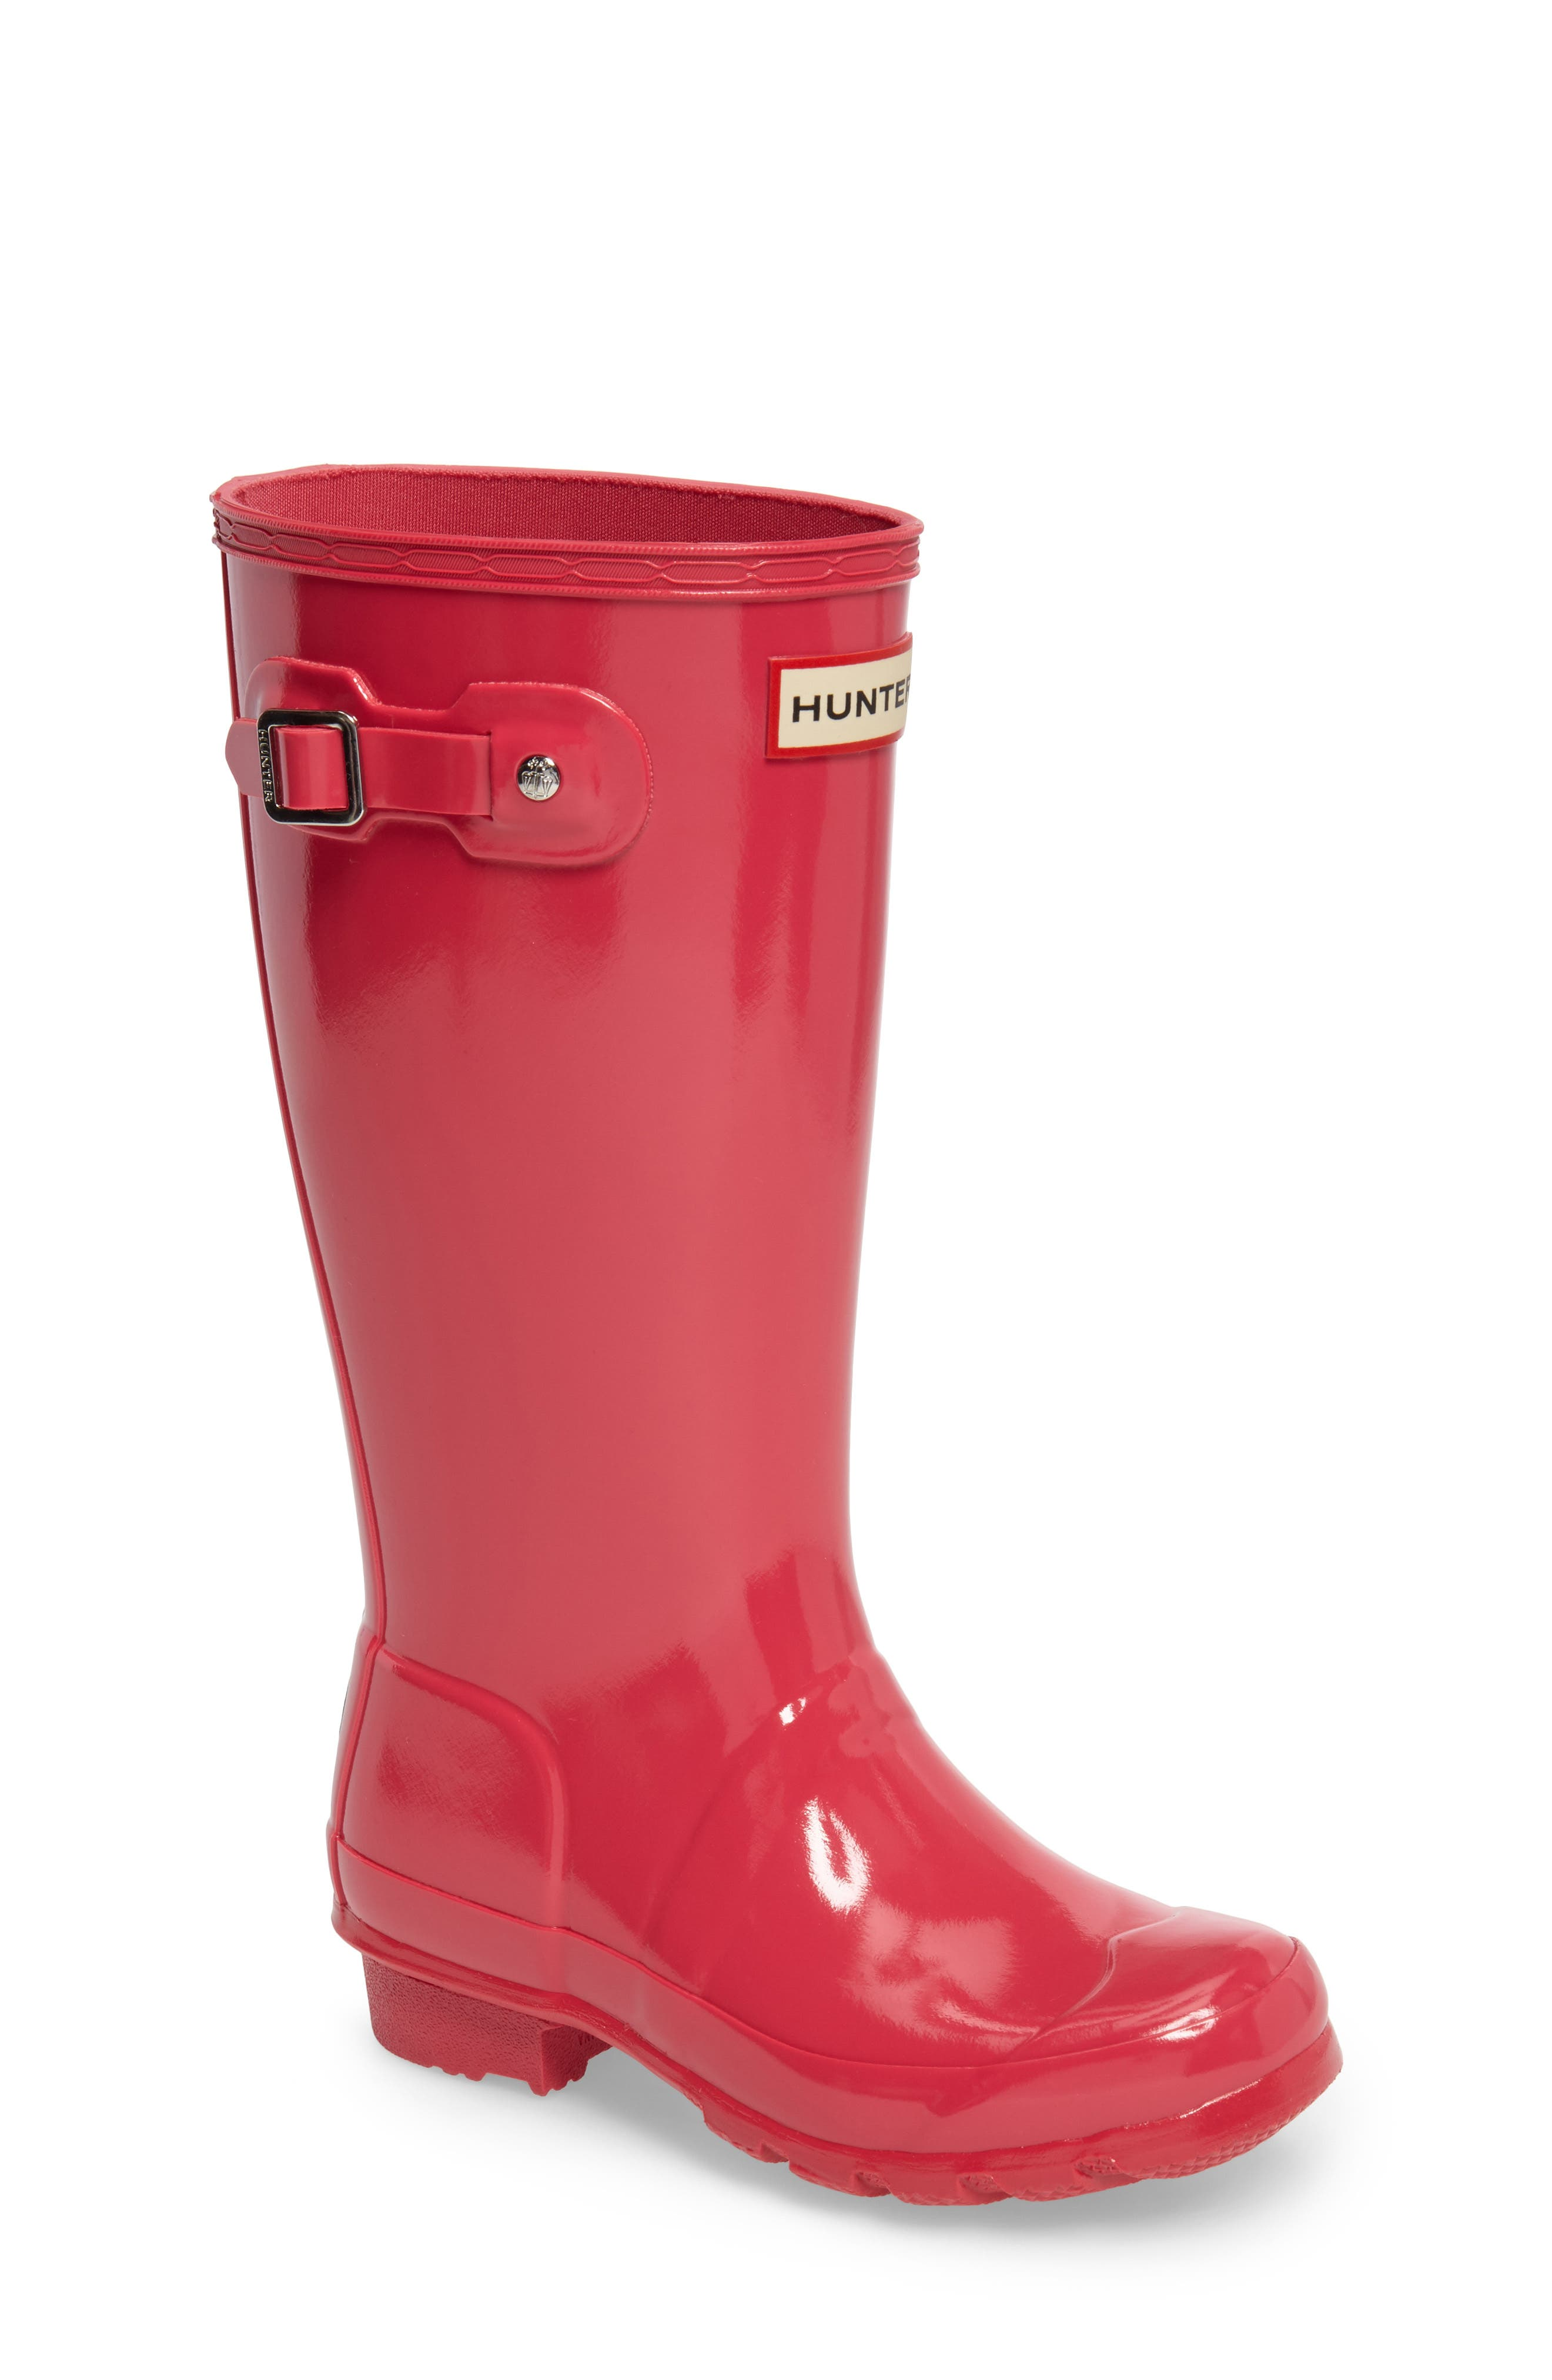 HUNTER Original Gloss Rain Boot, Main, color, BRIGHT PINK